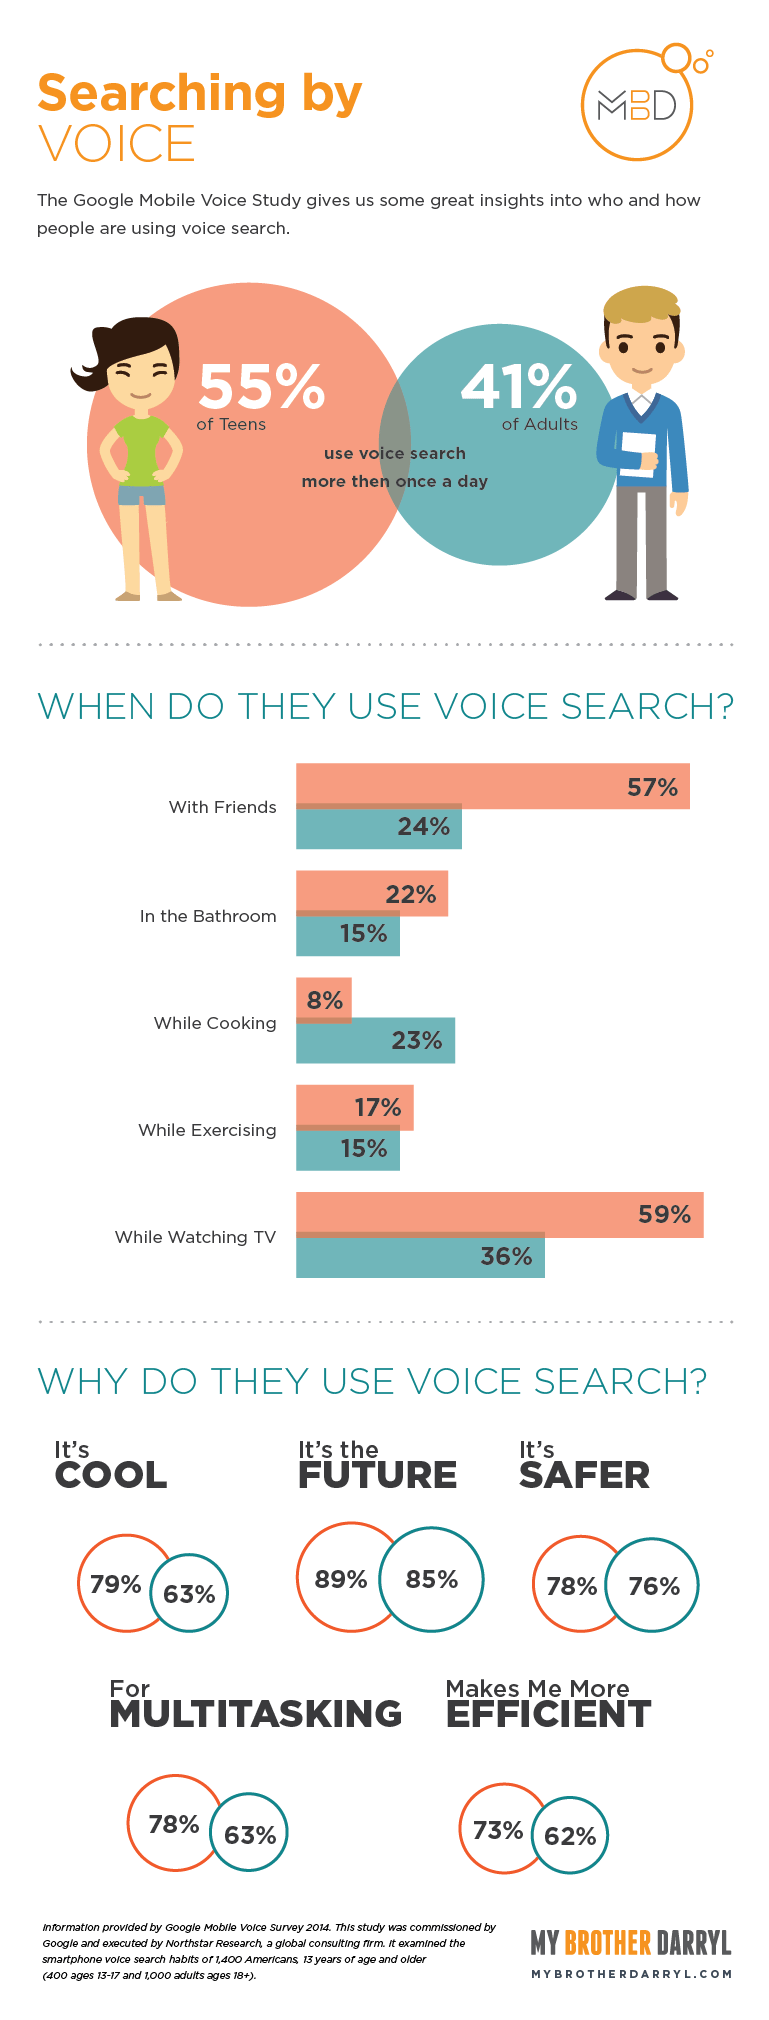 Voice Search - Infographic detailing who uses voice search